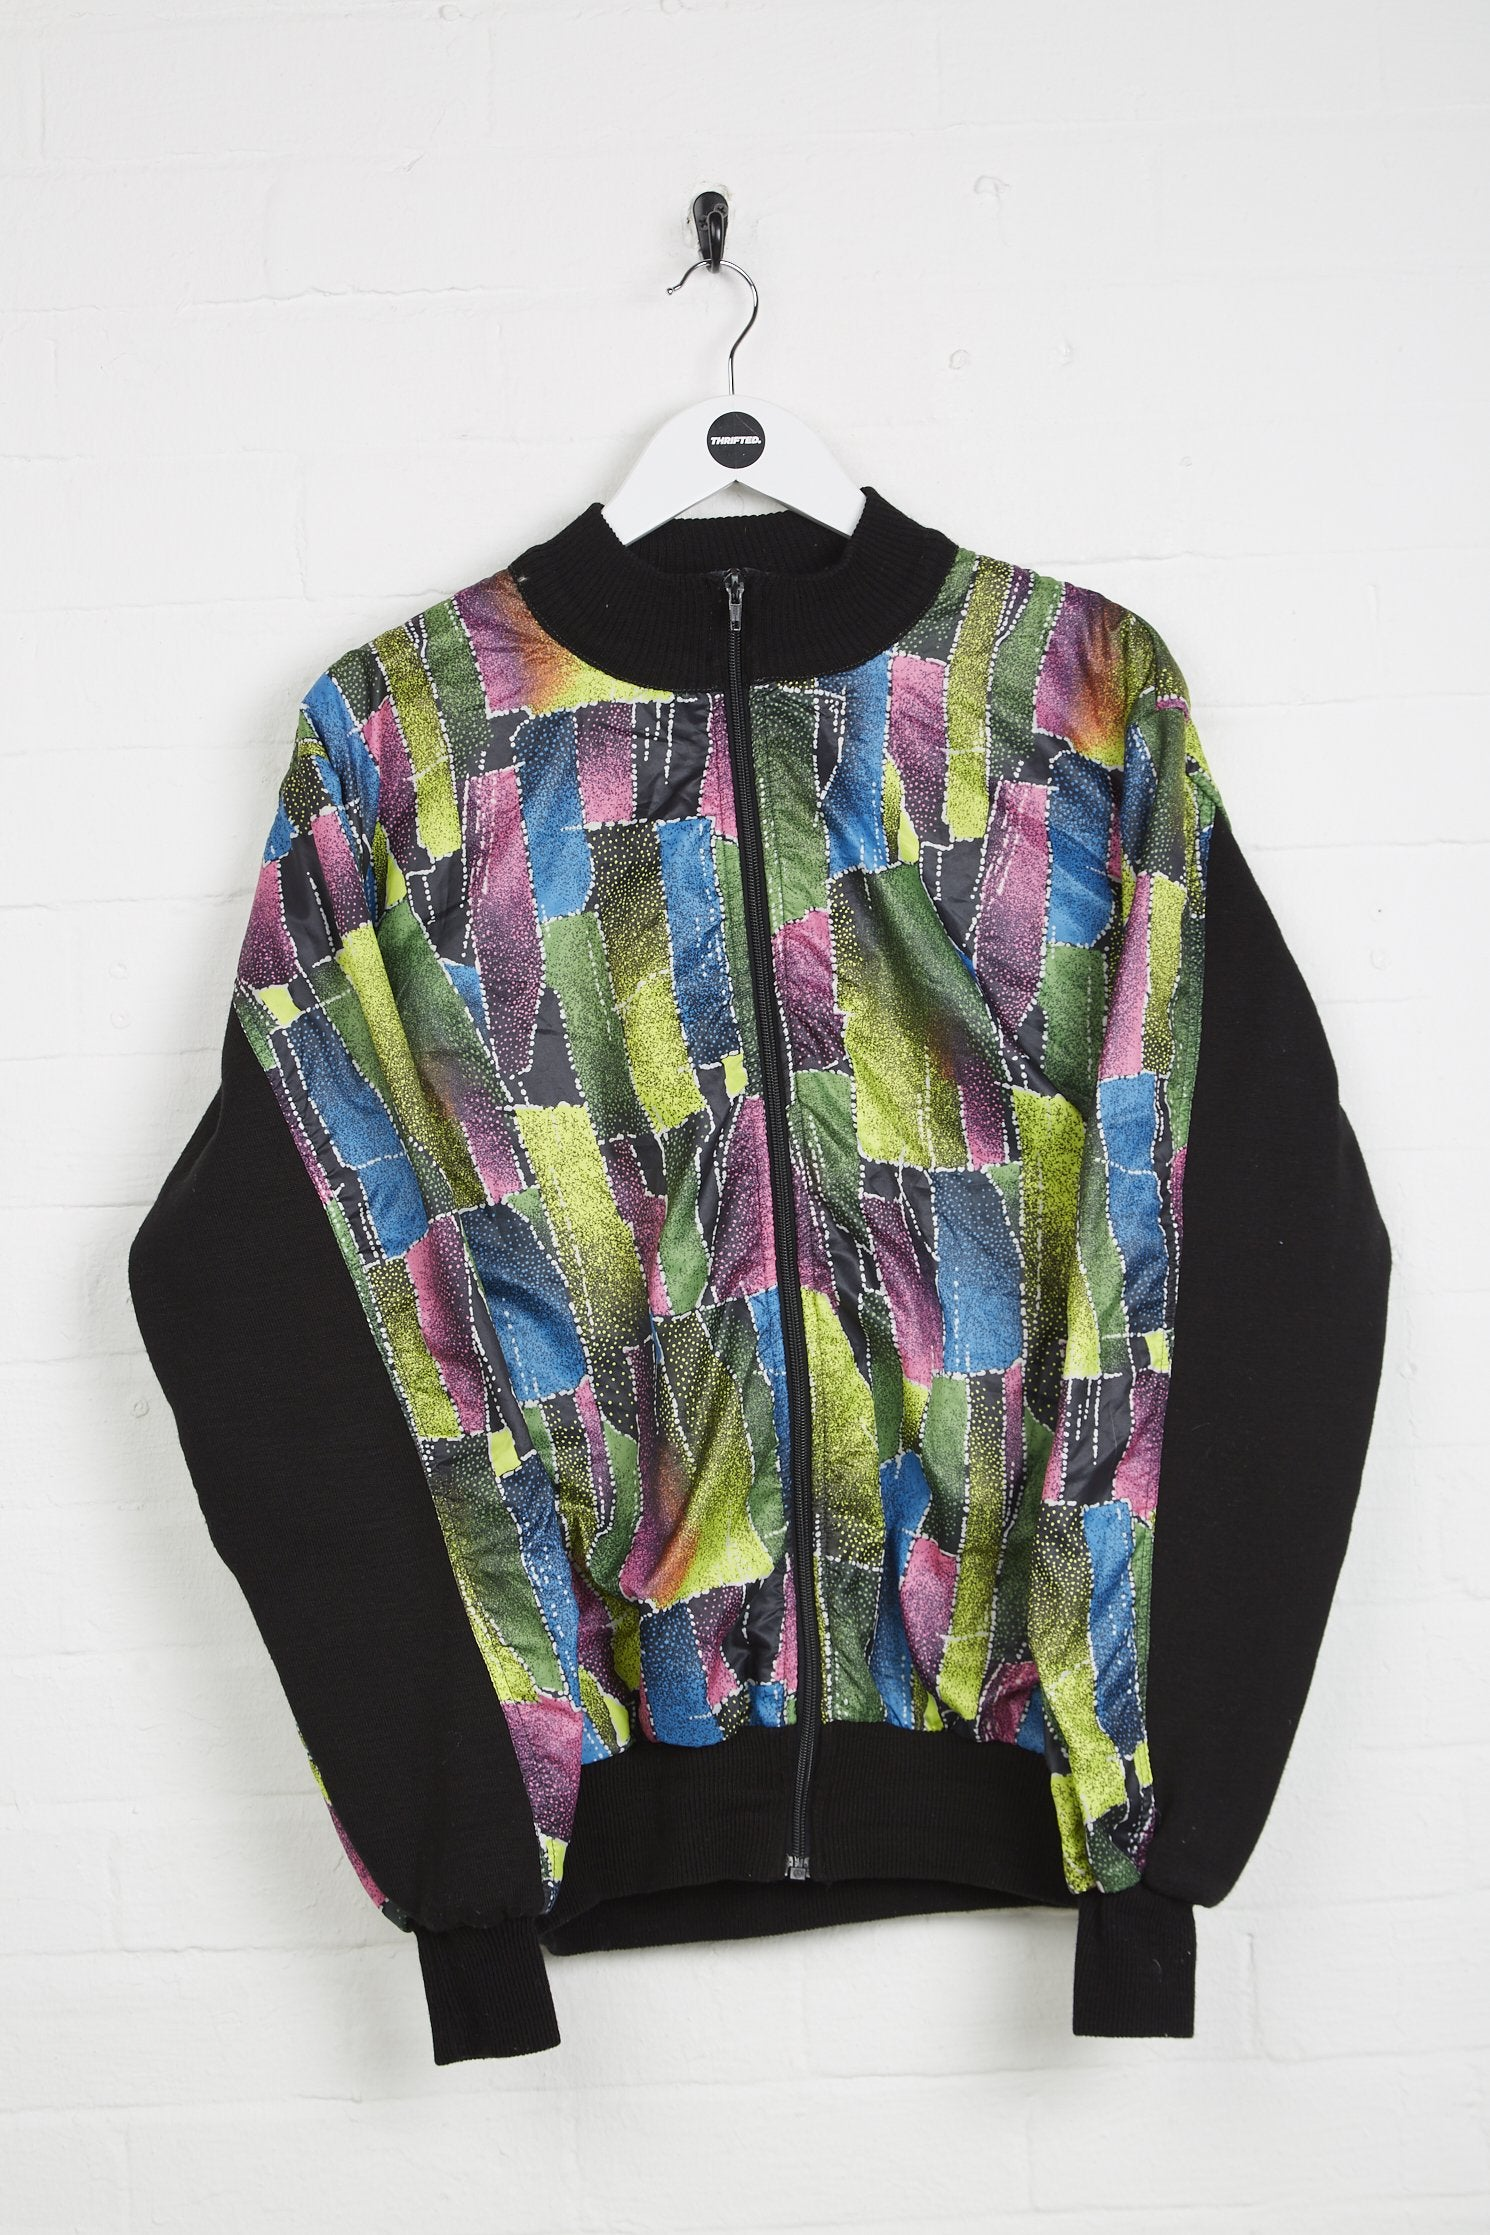 Vintage Trix Jacket - XL Patterned Polyester - Thrifted.com